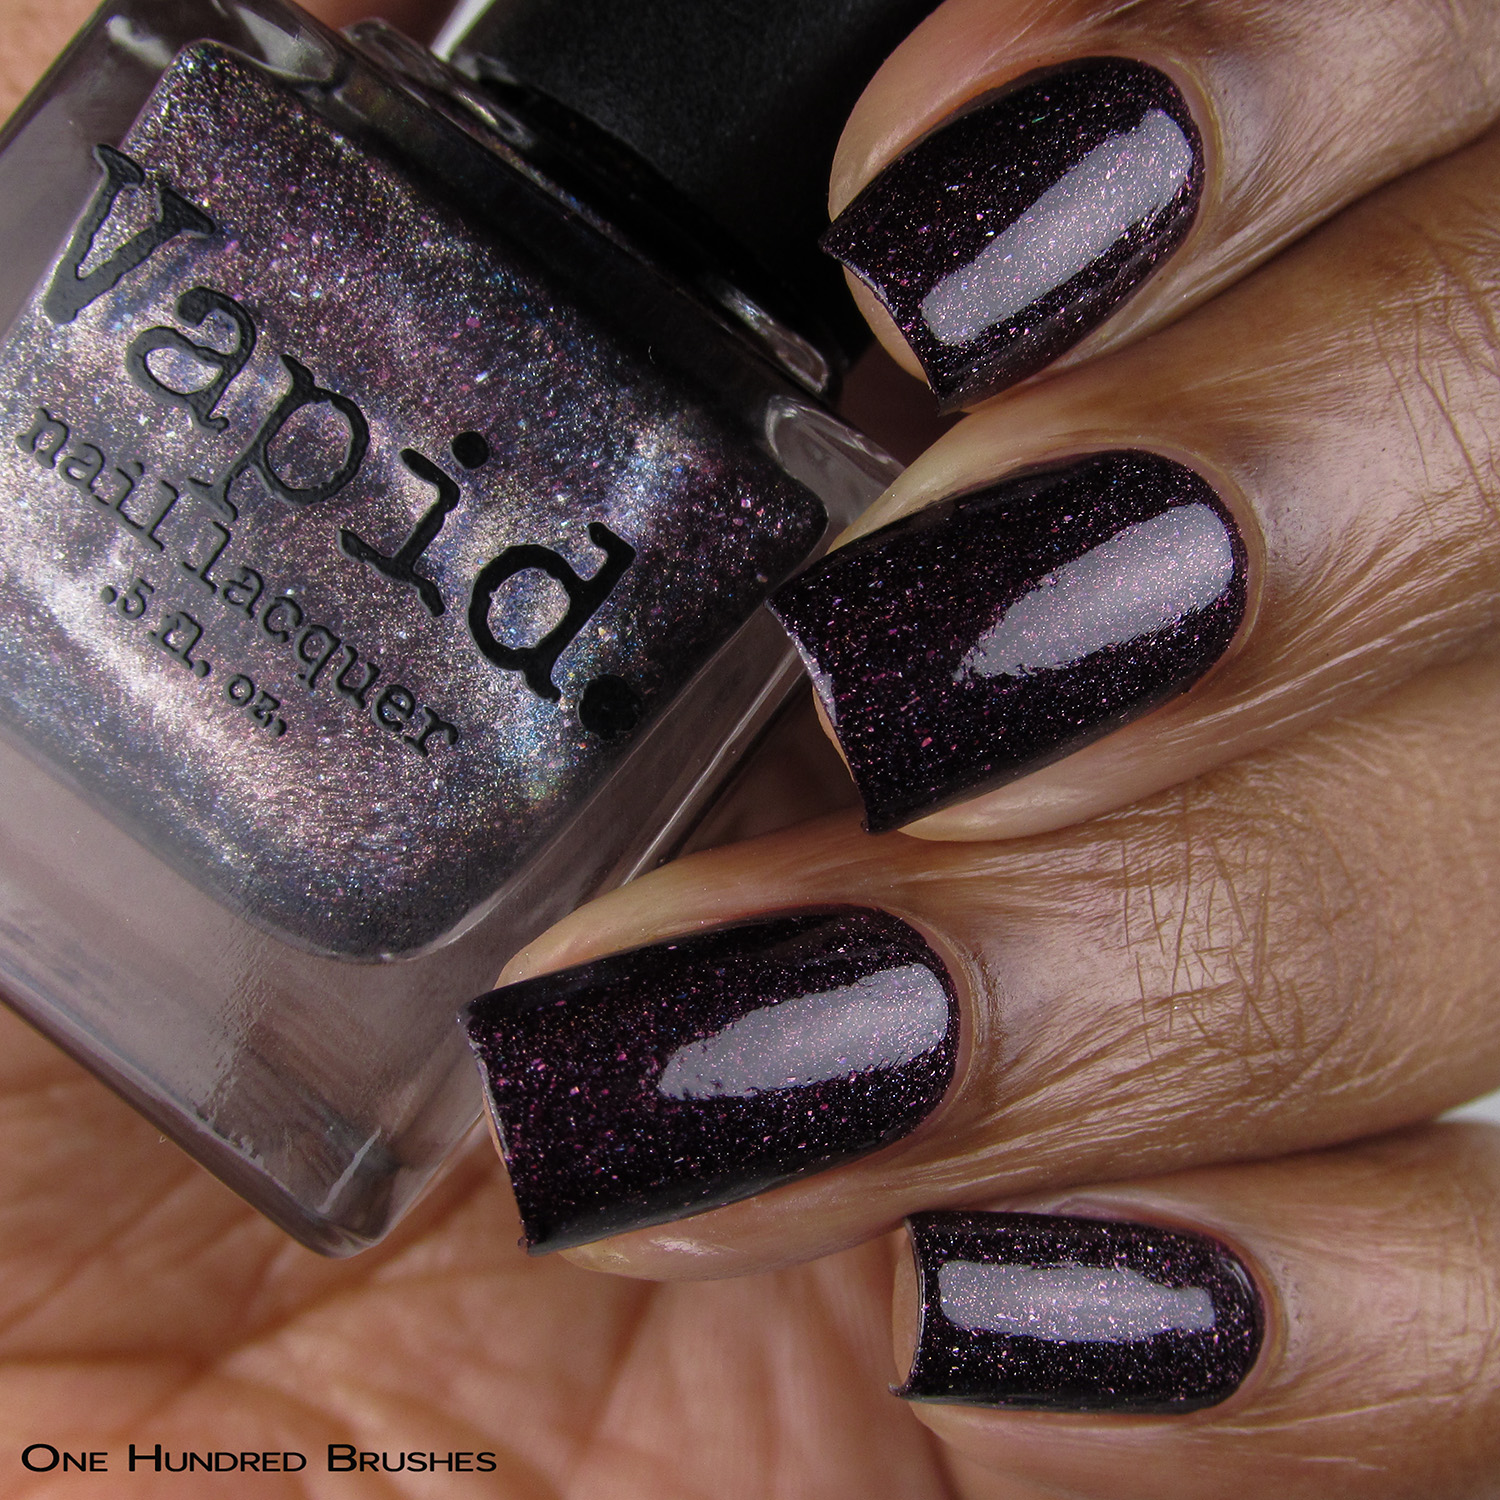 Dark Twisted Fantasies X - Bottle Front - Vapid Lacquer Sep 2018